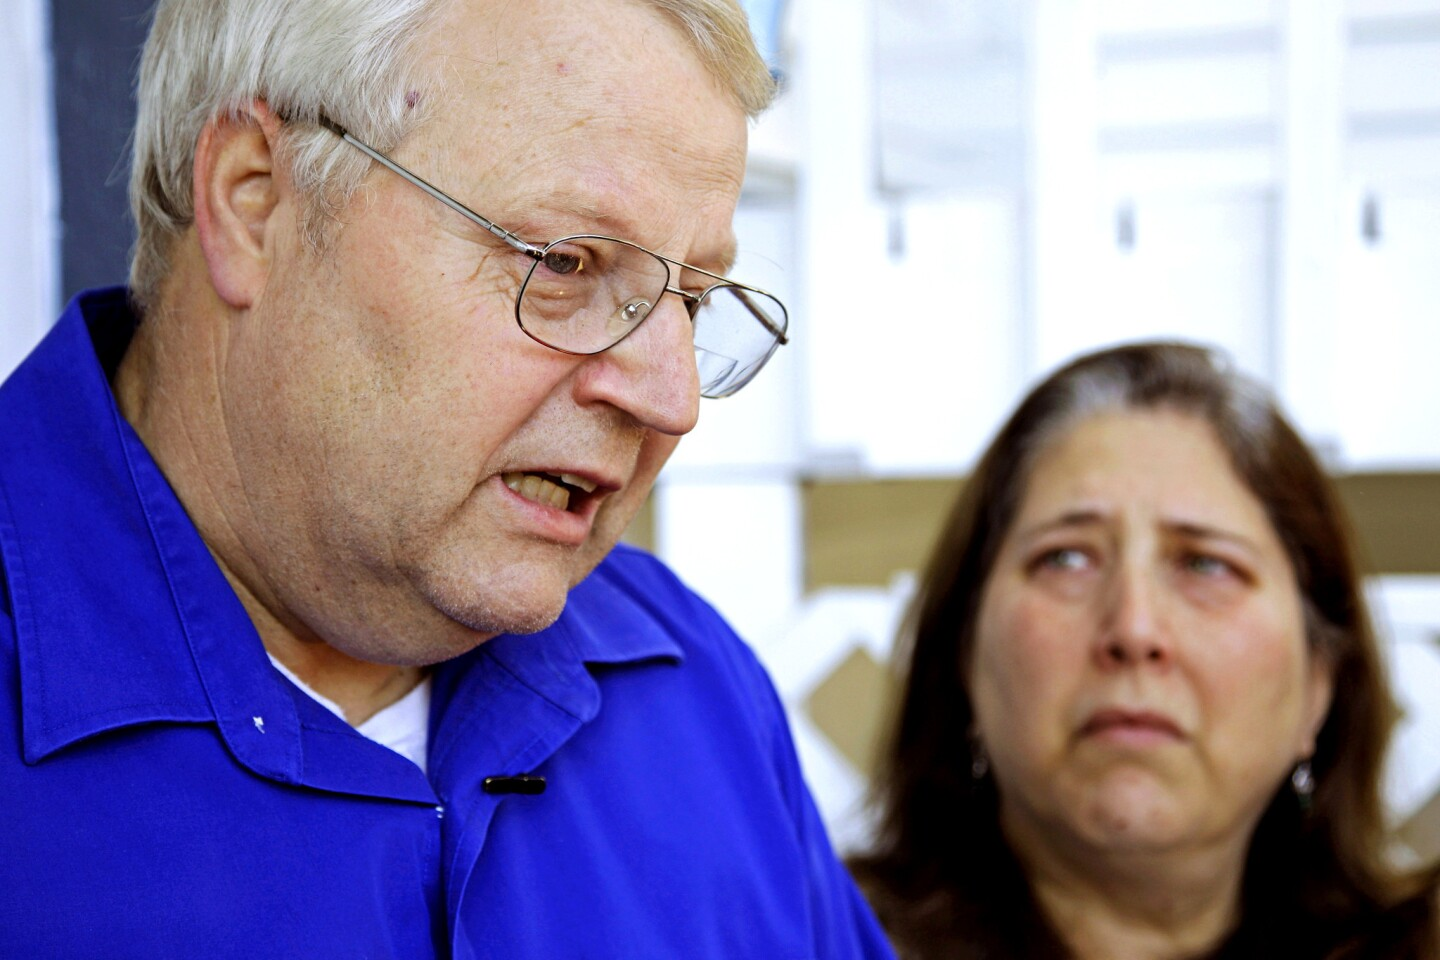 Chuck and Judy Cox, the parents of missing Utah mother Susan Powell, talk to reporters at their home in Puyallup, Wash. Their two young grandsons, Charles and Braden, were killed a day earlier by their father, Josh Powell, who then killed himself in a fire. Susan Powell went missing from her West Valley City, Utah, home in December 2009.